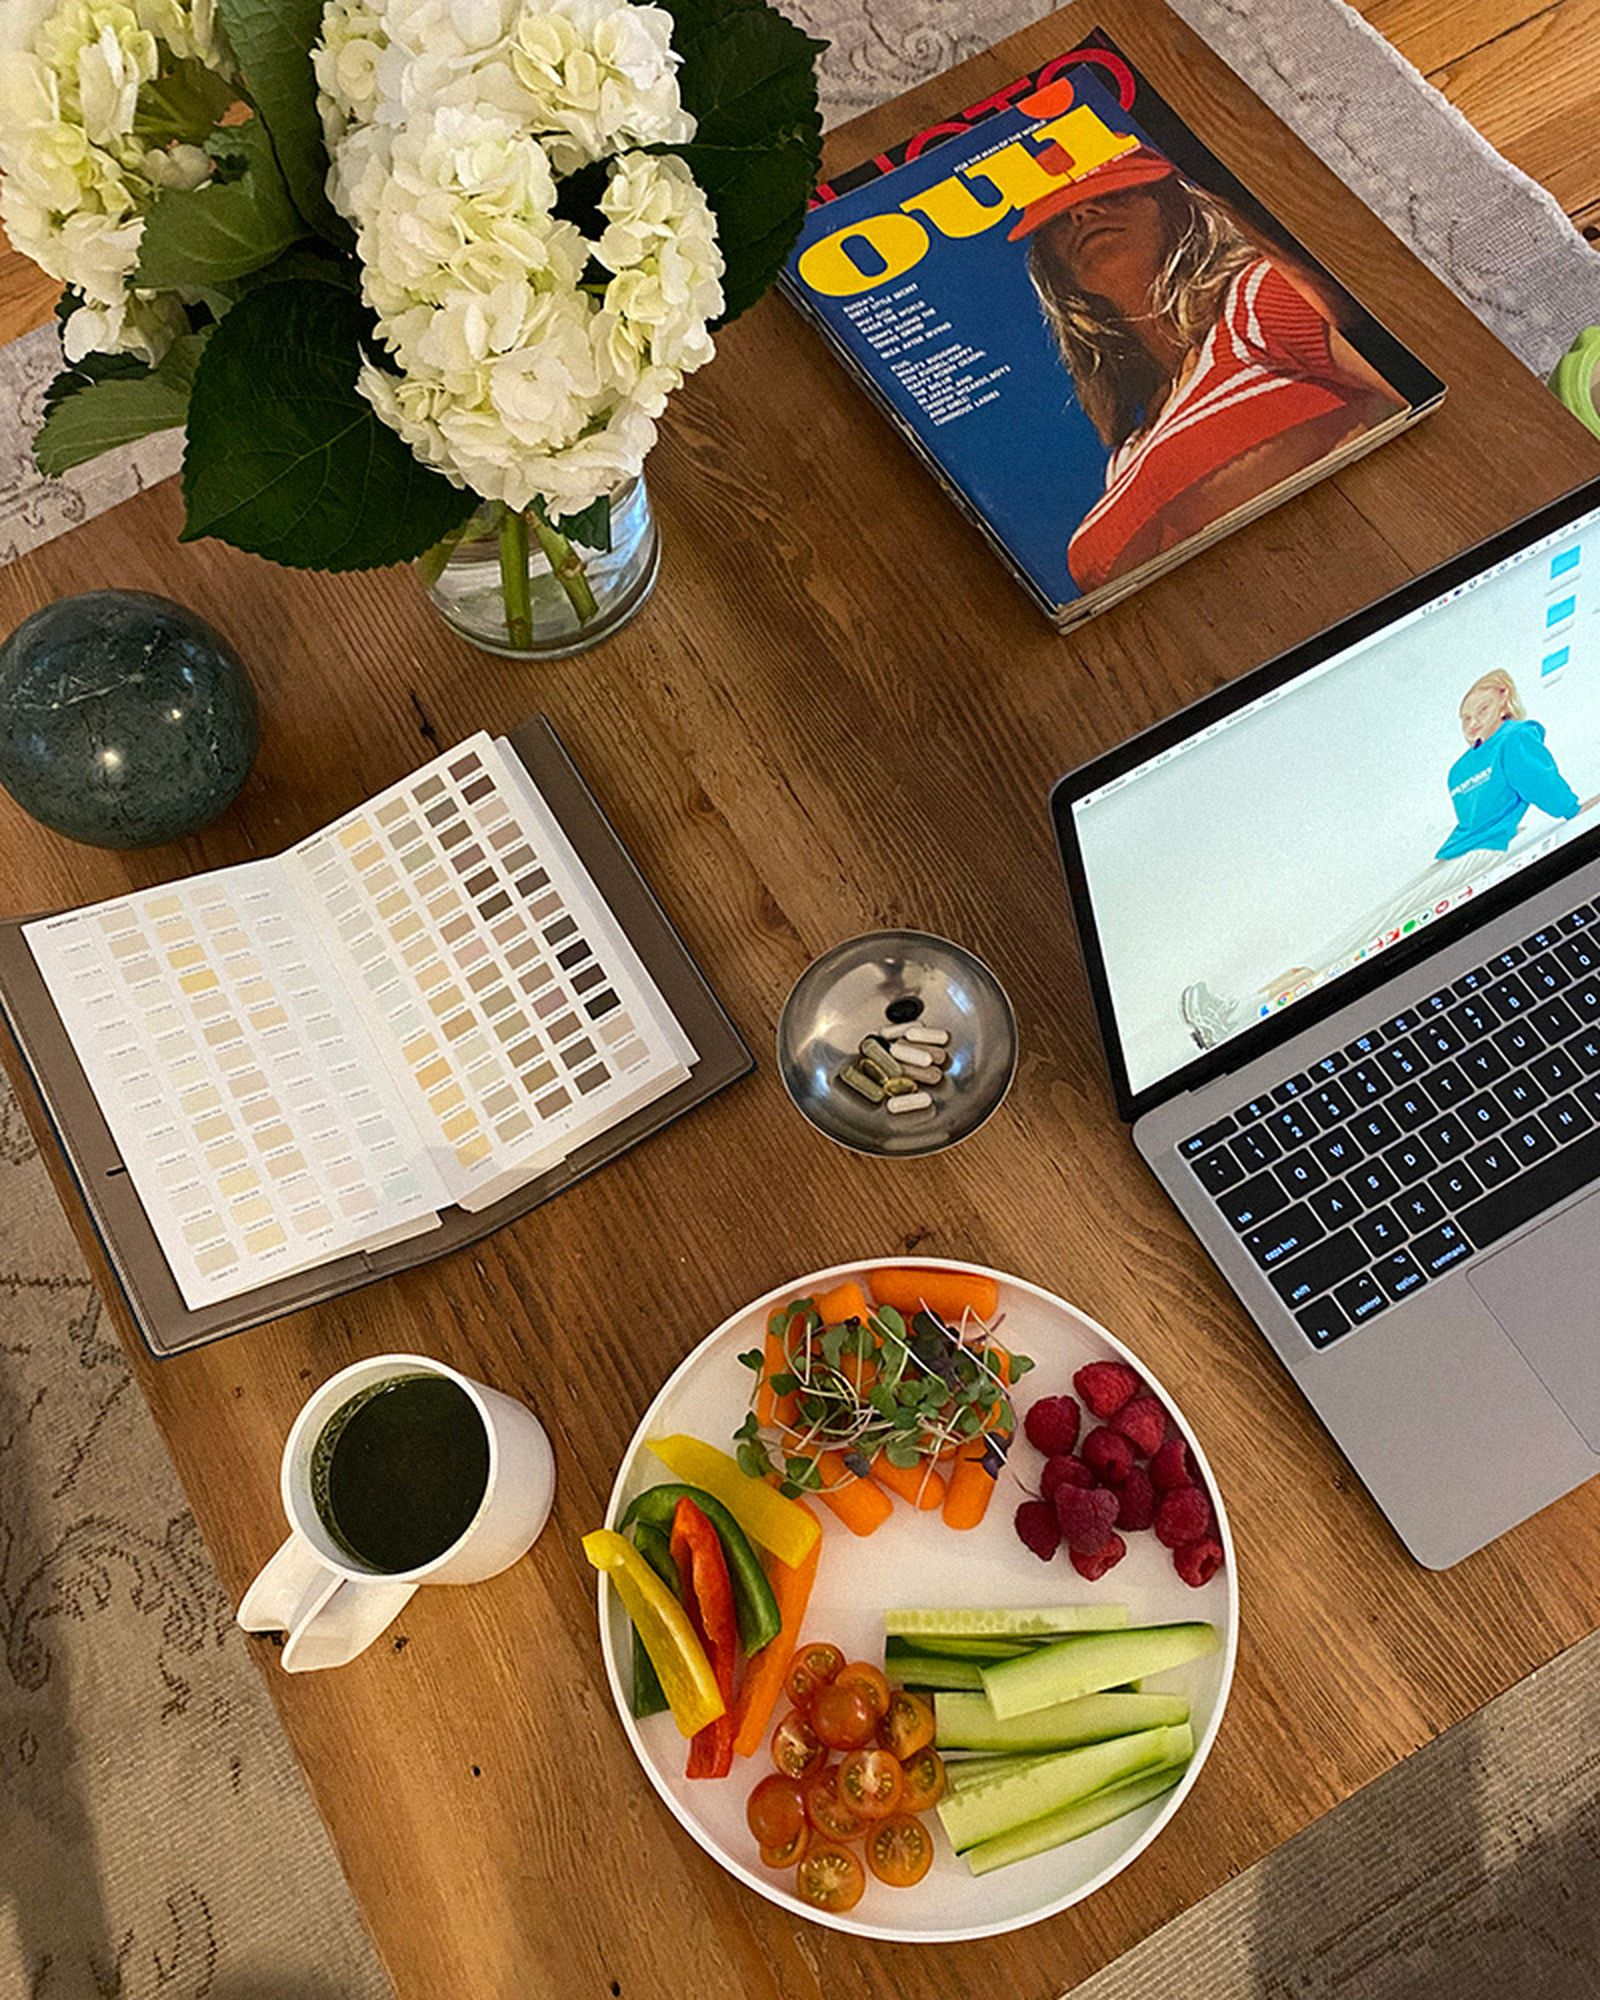 wfh-office-tour-look-inside-home-offices-emily-oberg-01